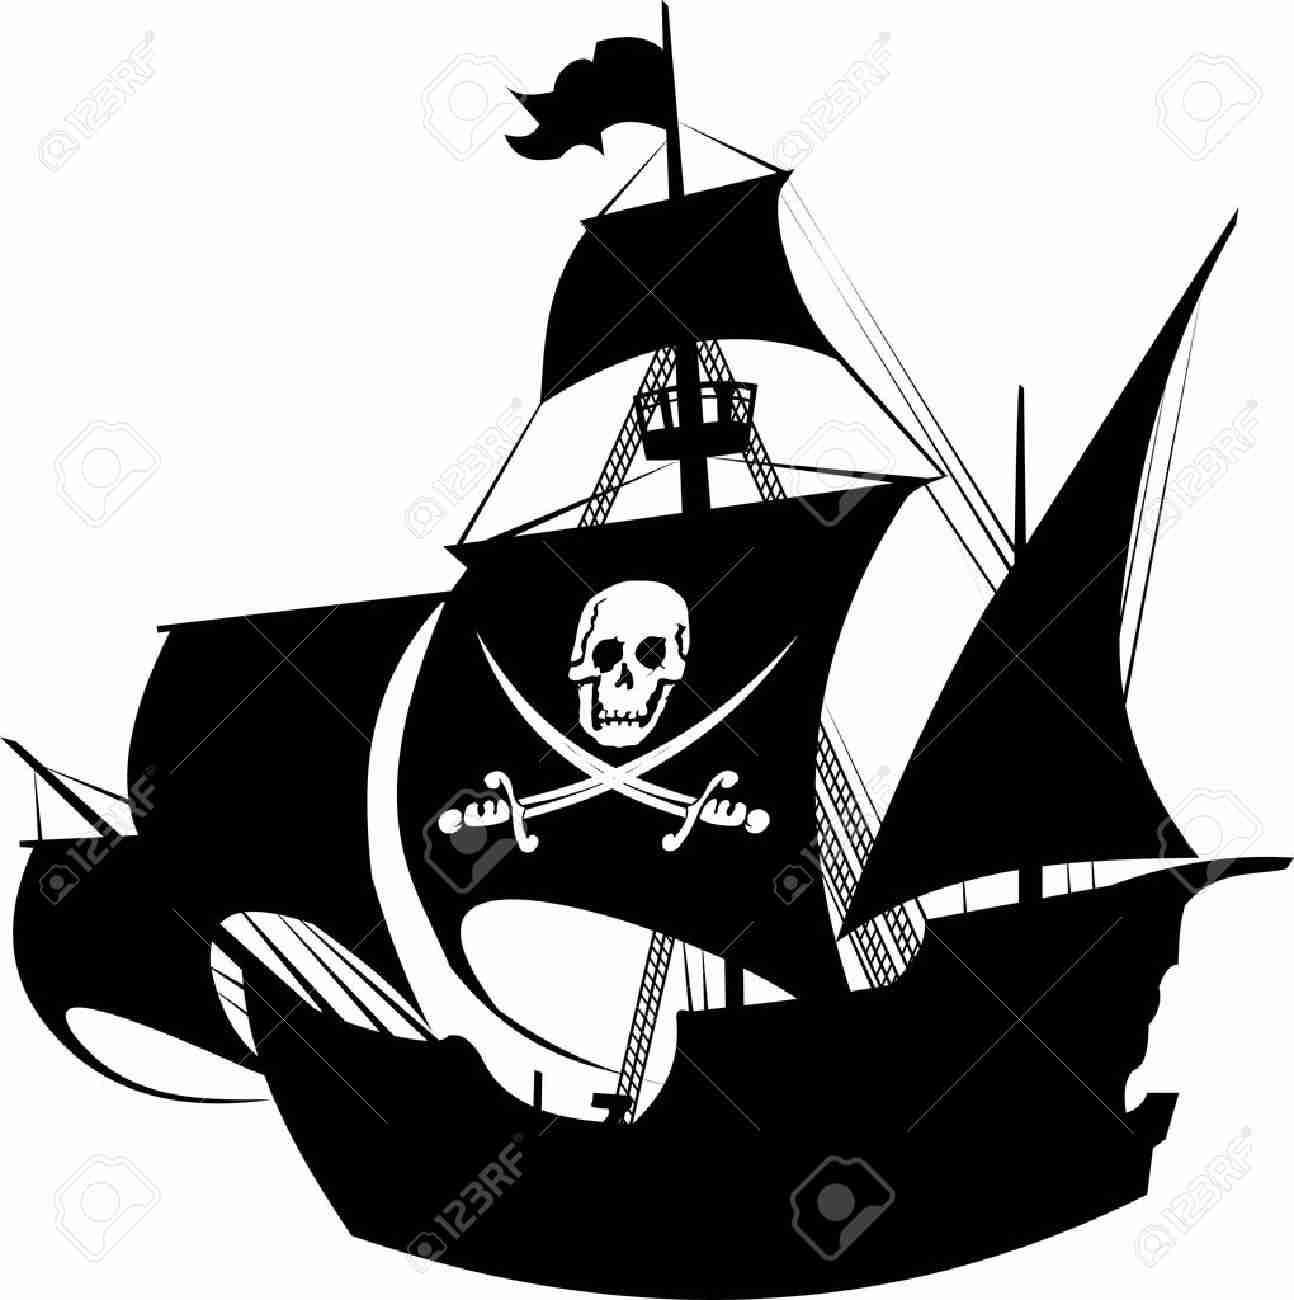 1294x1300 Silhouette Of A Pirate Ship With The Image Skeleton On Fancy